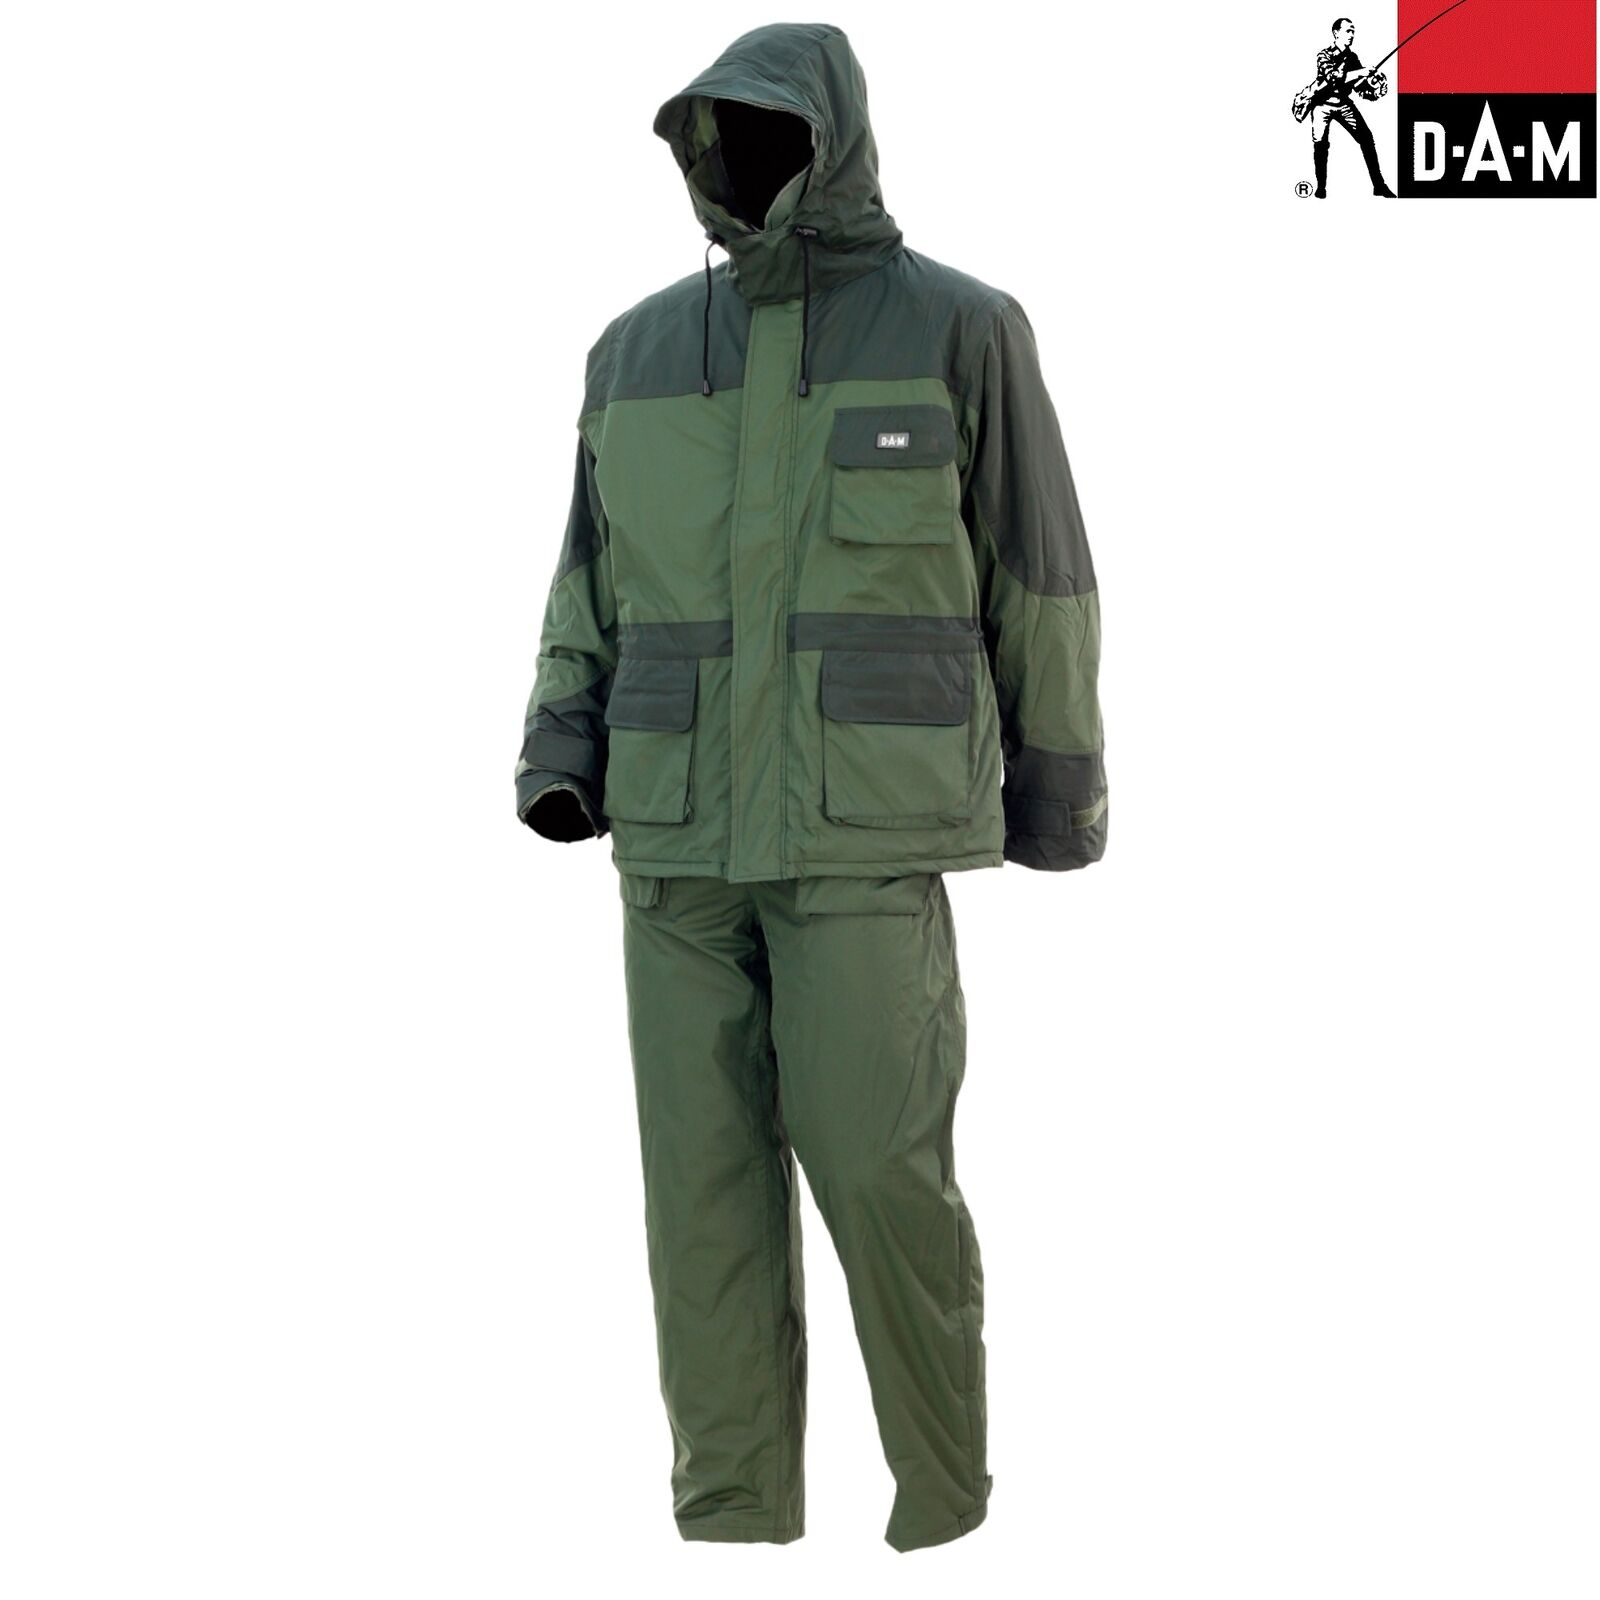 DAM DuraTherm ThermoSuit   Green   100% Waterproof   100% Polyester Microfibre